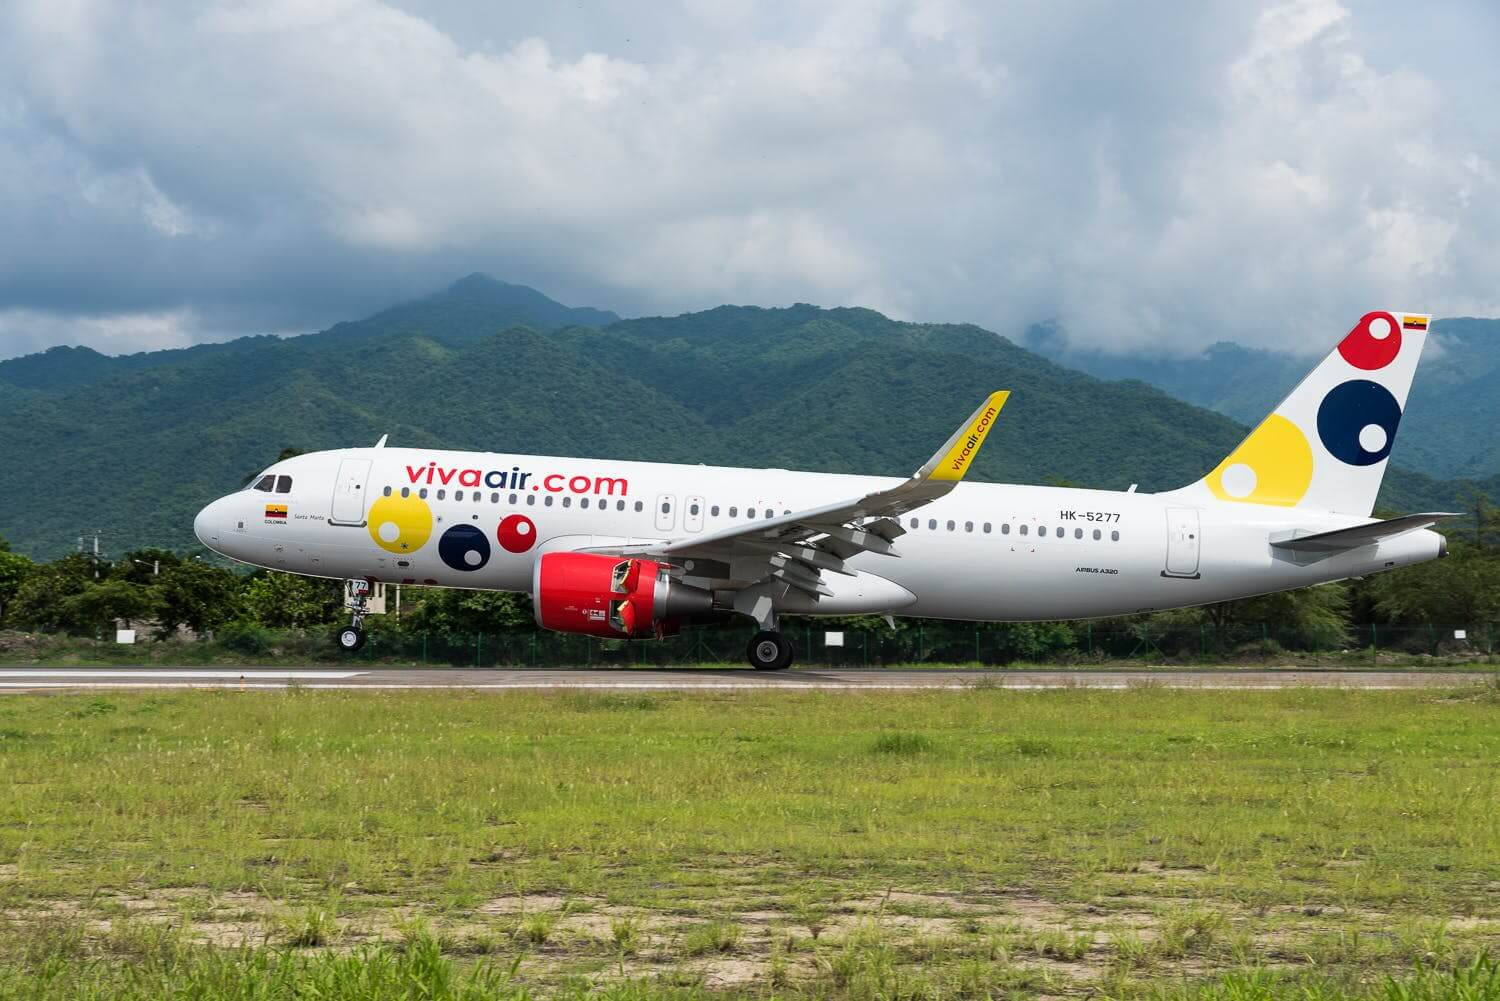 Viva Air Labs introduces competition to support the aviation industry in Latin America